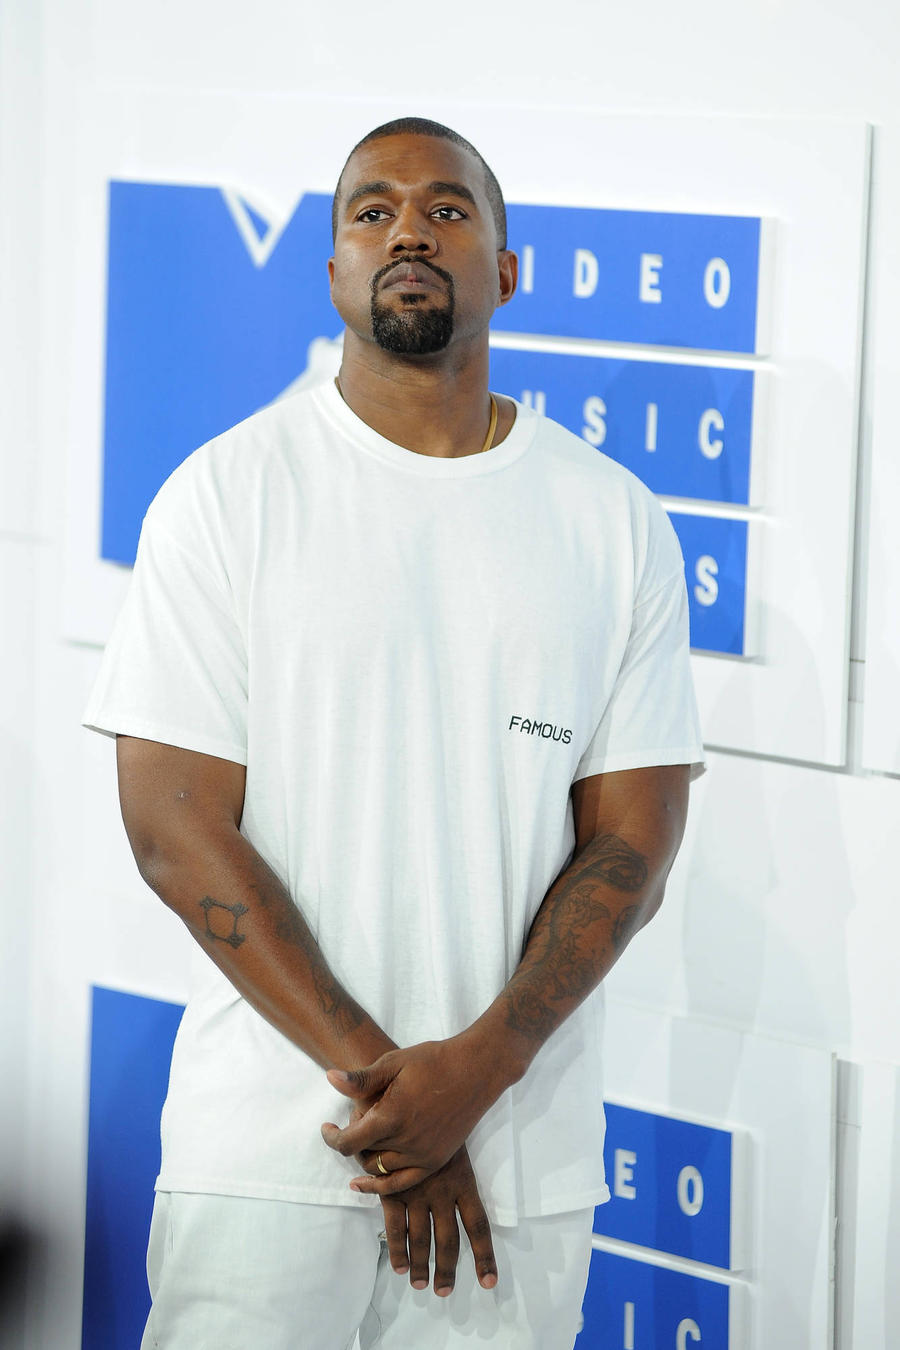 Kanye West Continues Taylor Swift Feud During Nashville Concert